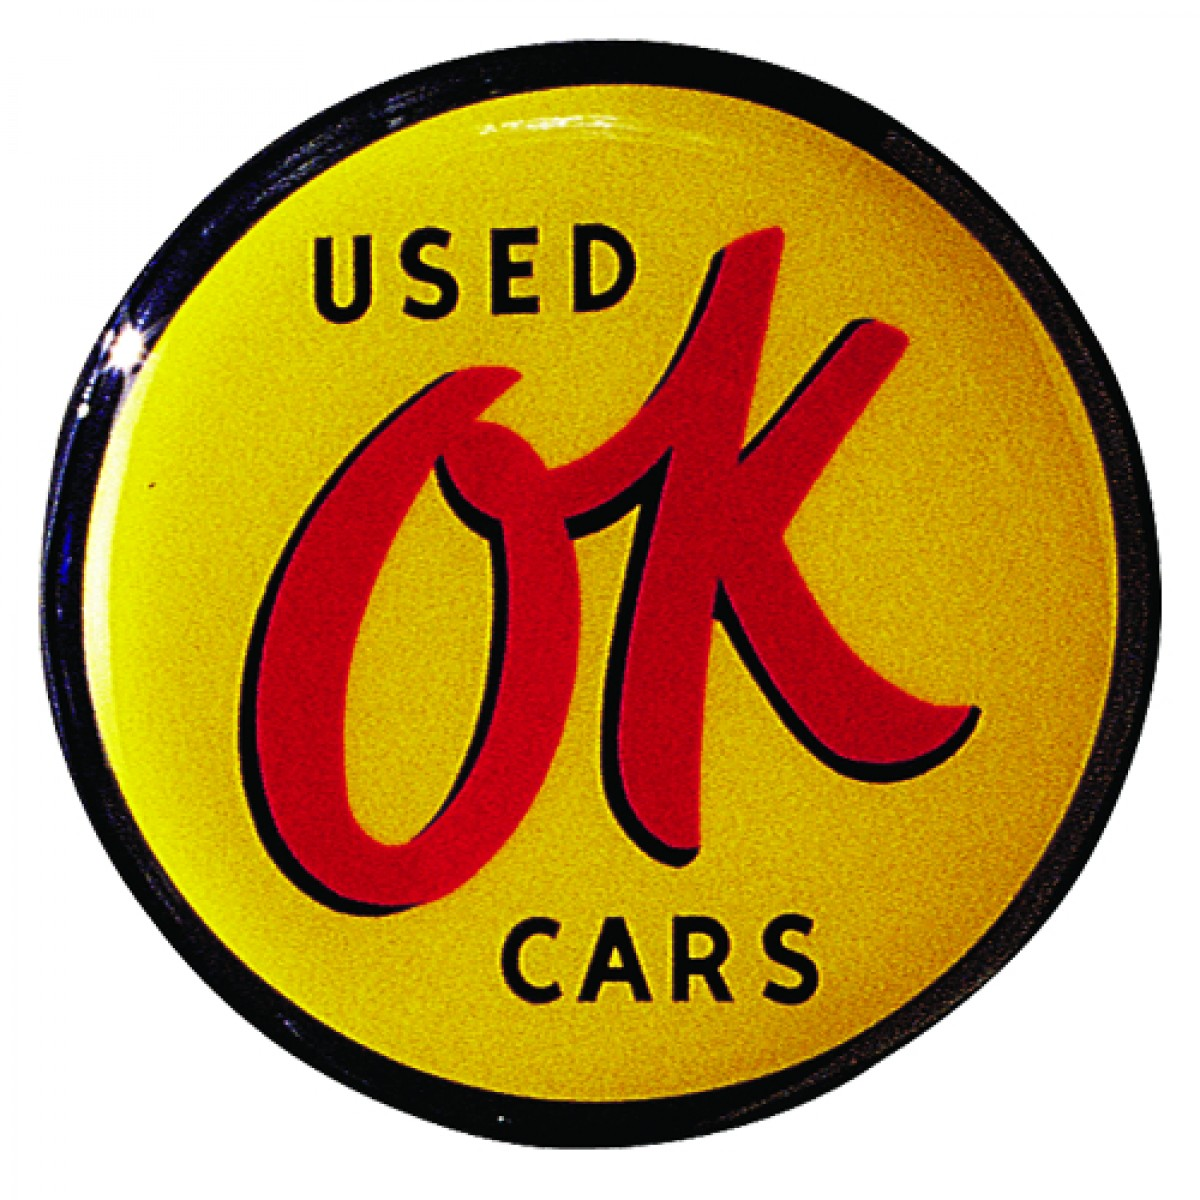 Used Cars: Ok Used Cars Counter Stool